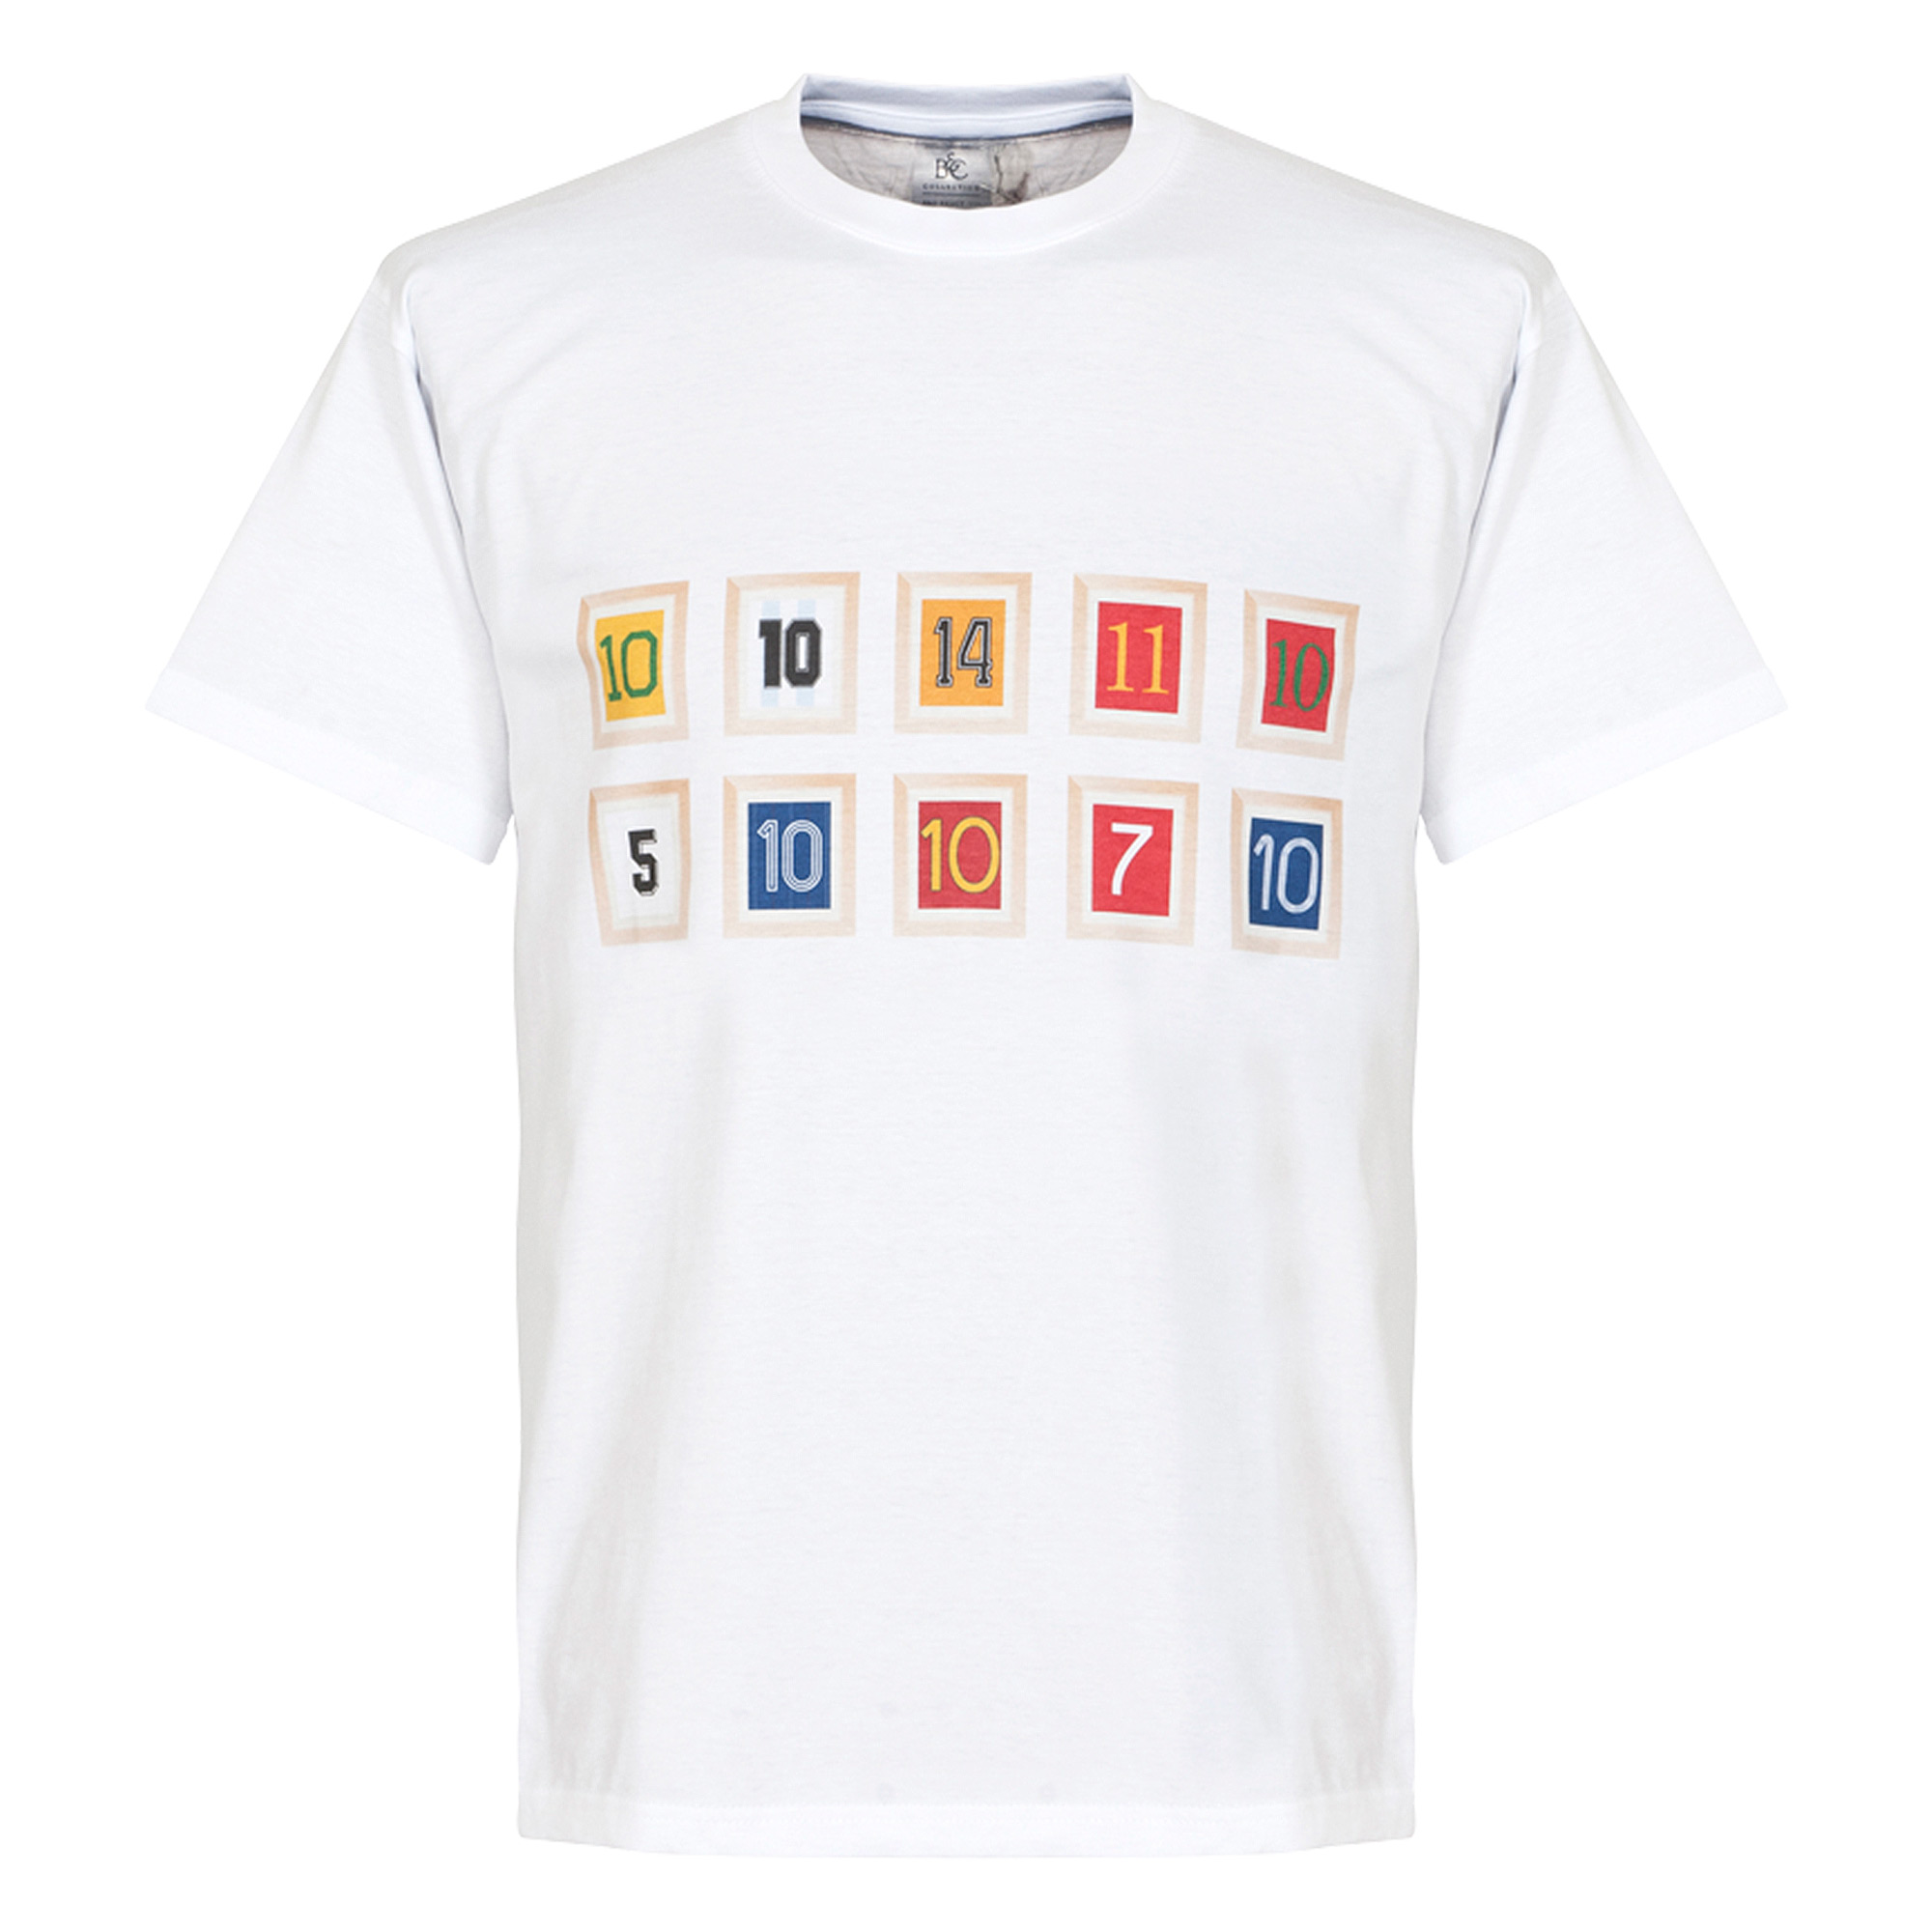 Players Tee - White - M